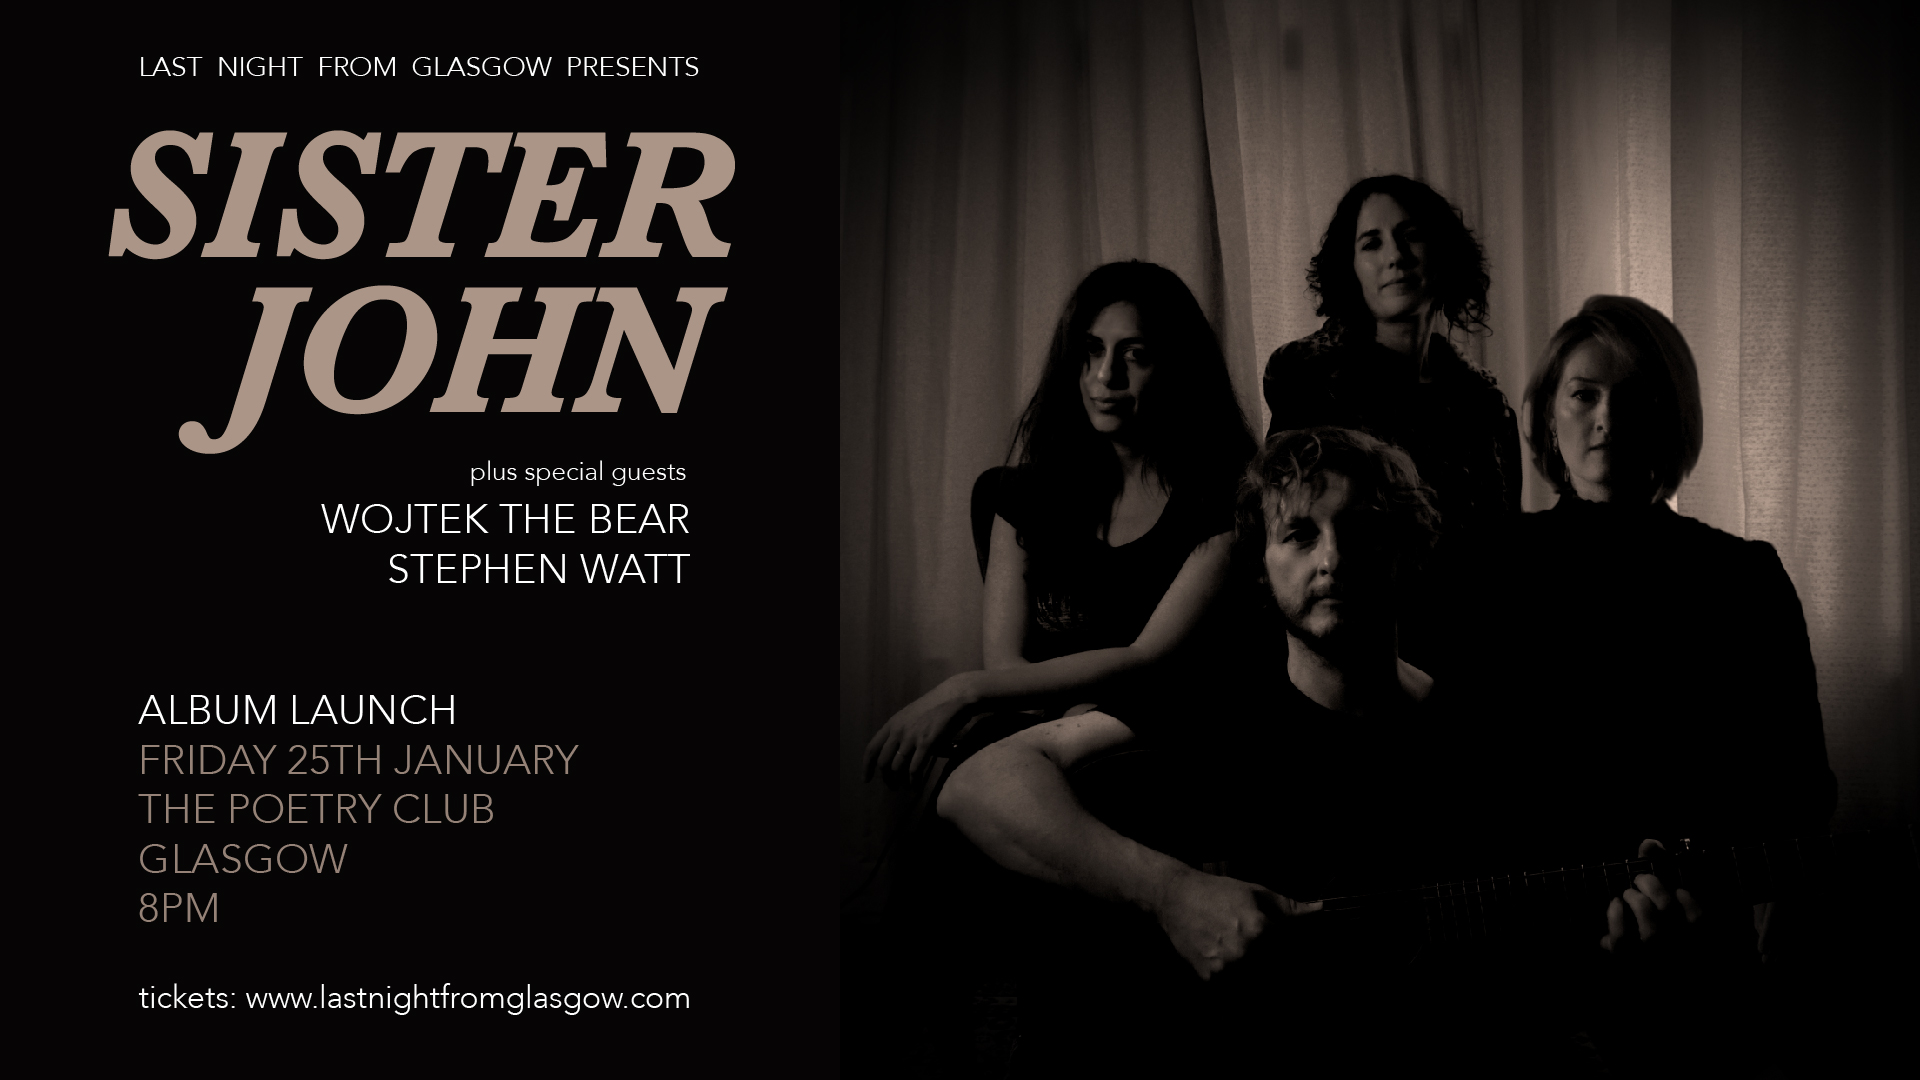 Sister John announce launch event at The Poetry Club – Last